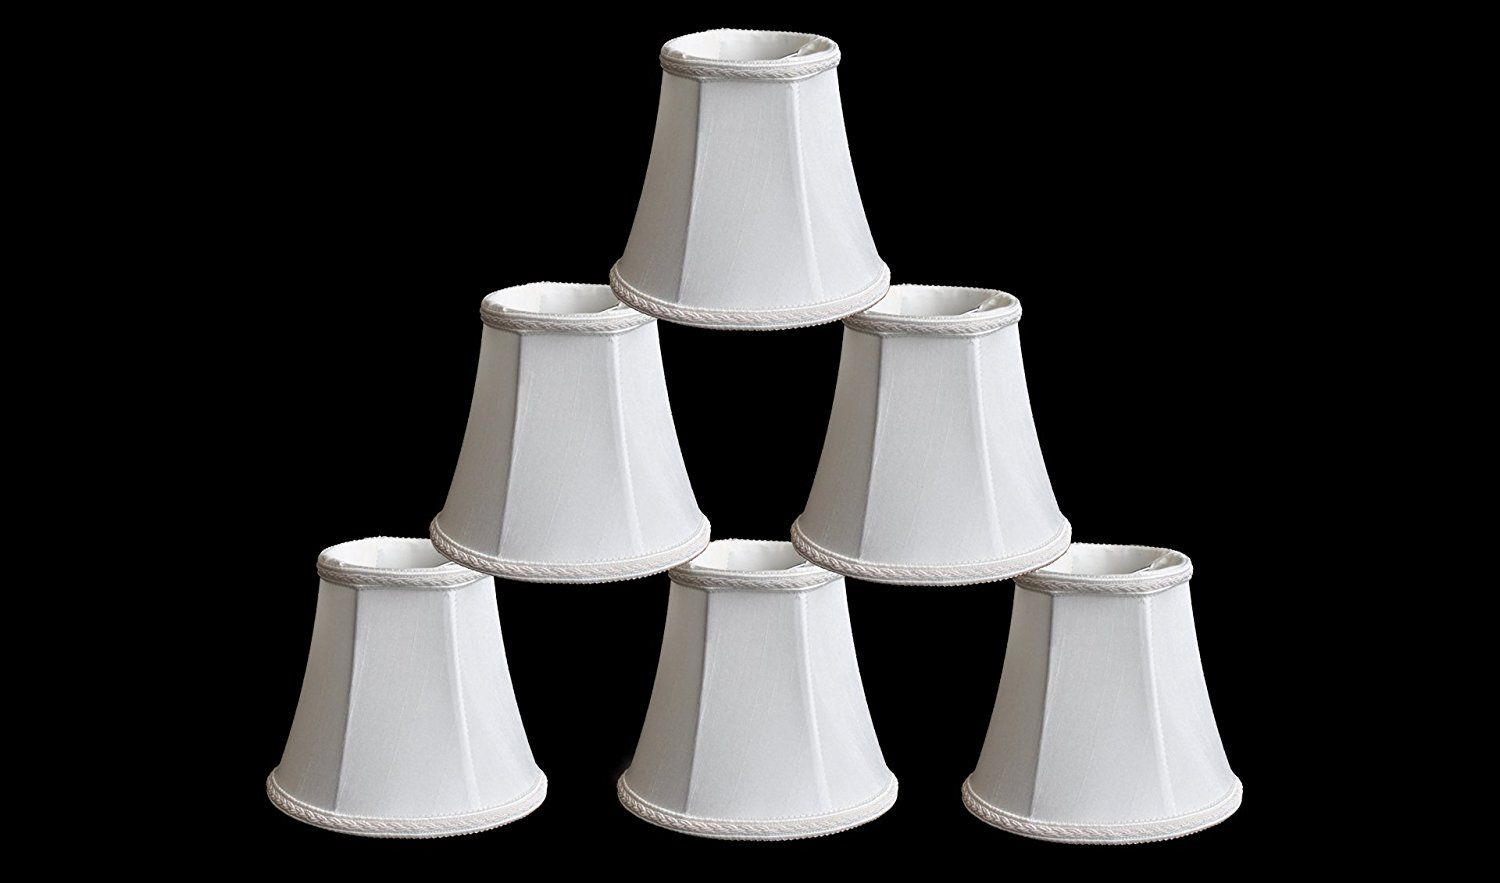 Urbanest 1100465c Set Of 6 Chandelier Mini Lamp Shade 5 Inch Bell Clip On Off White New Offers Awaiting You Dec Mini Lamp Lamp Shades White Lamp Shade